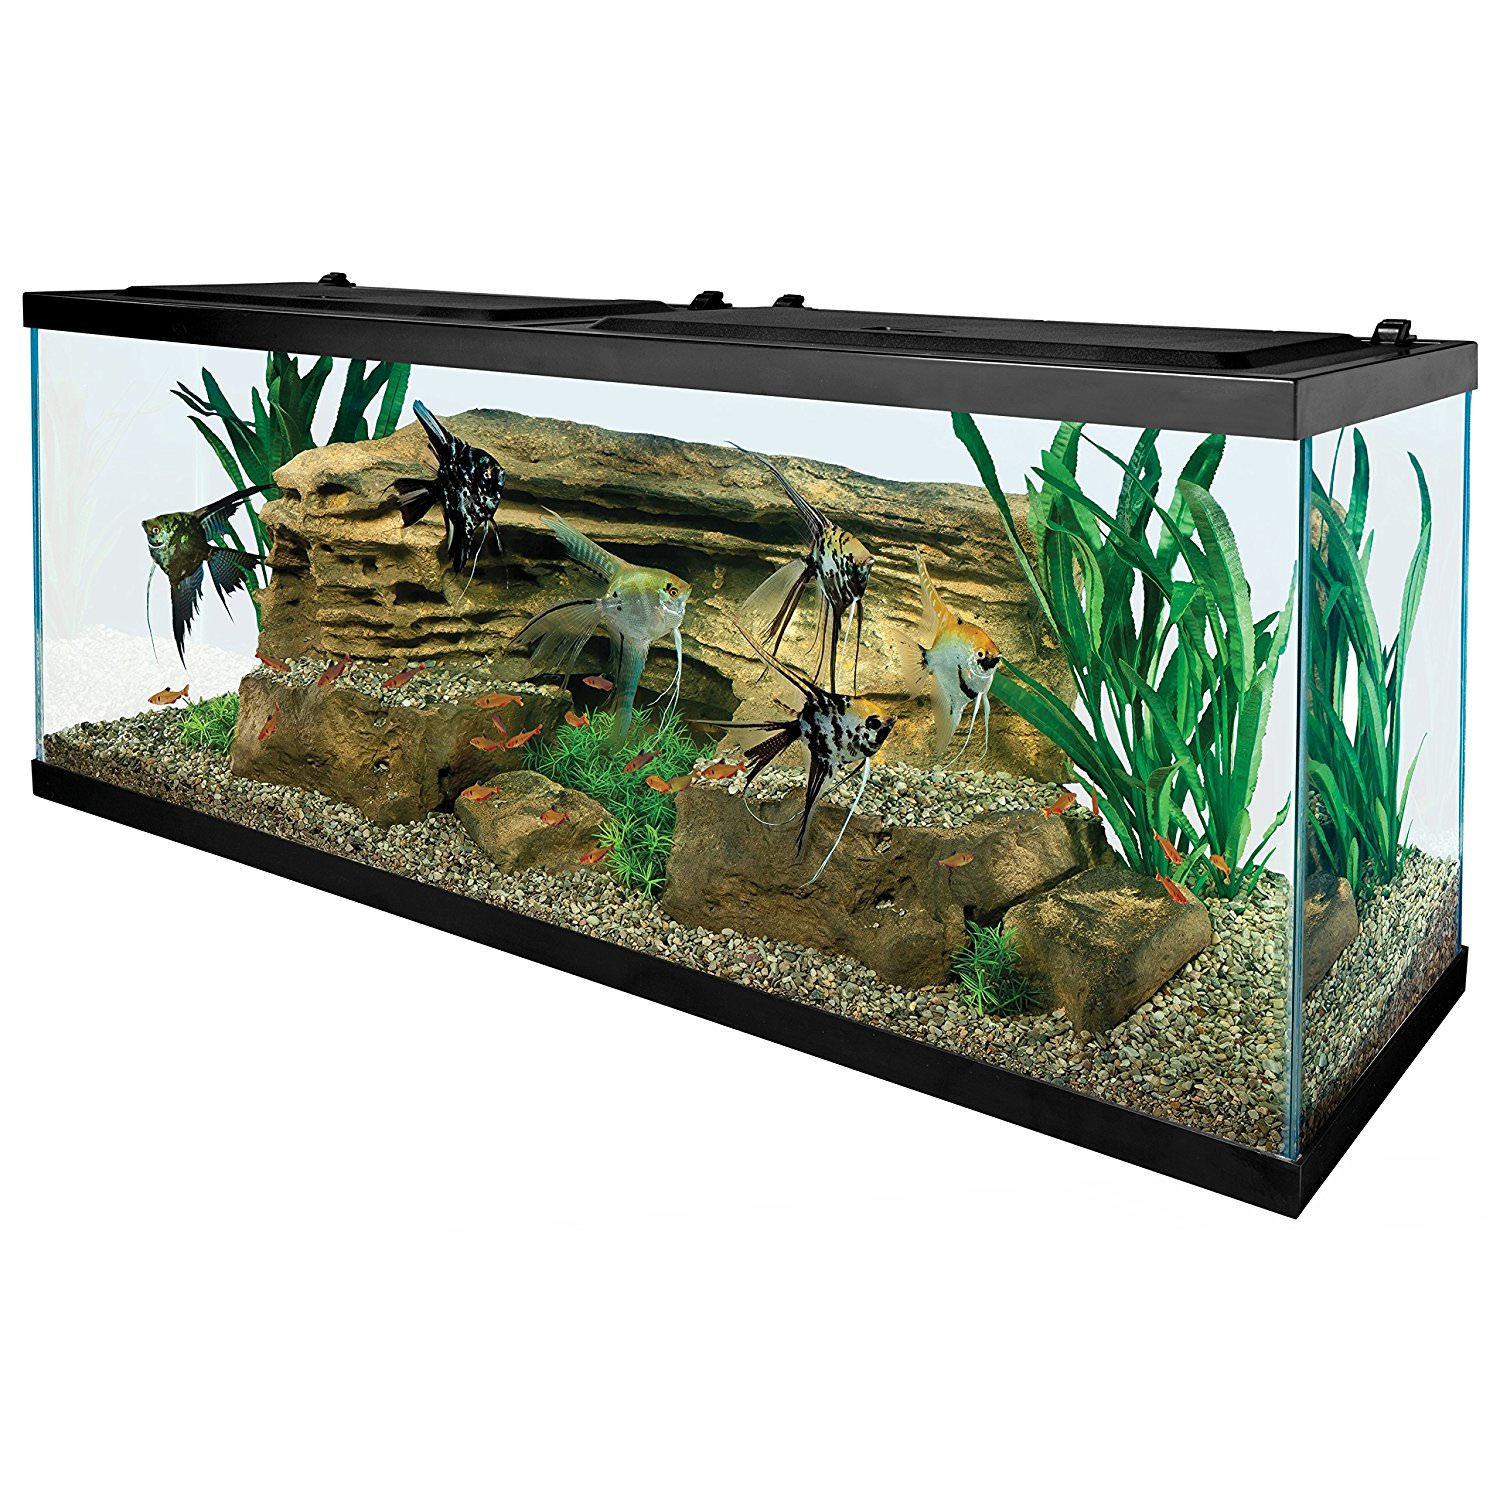 Tetra Aquarium Kit, 55 Gallon, 51 X 16 X24 Inches by Tetra